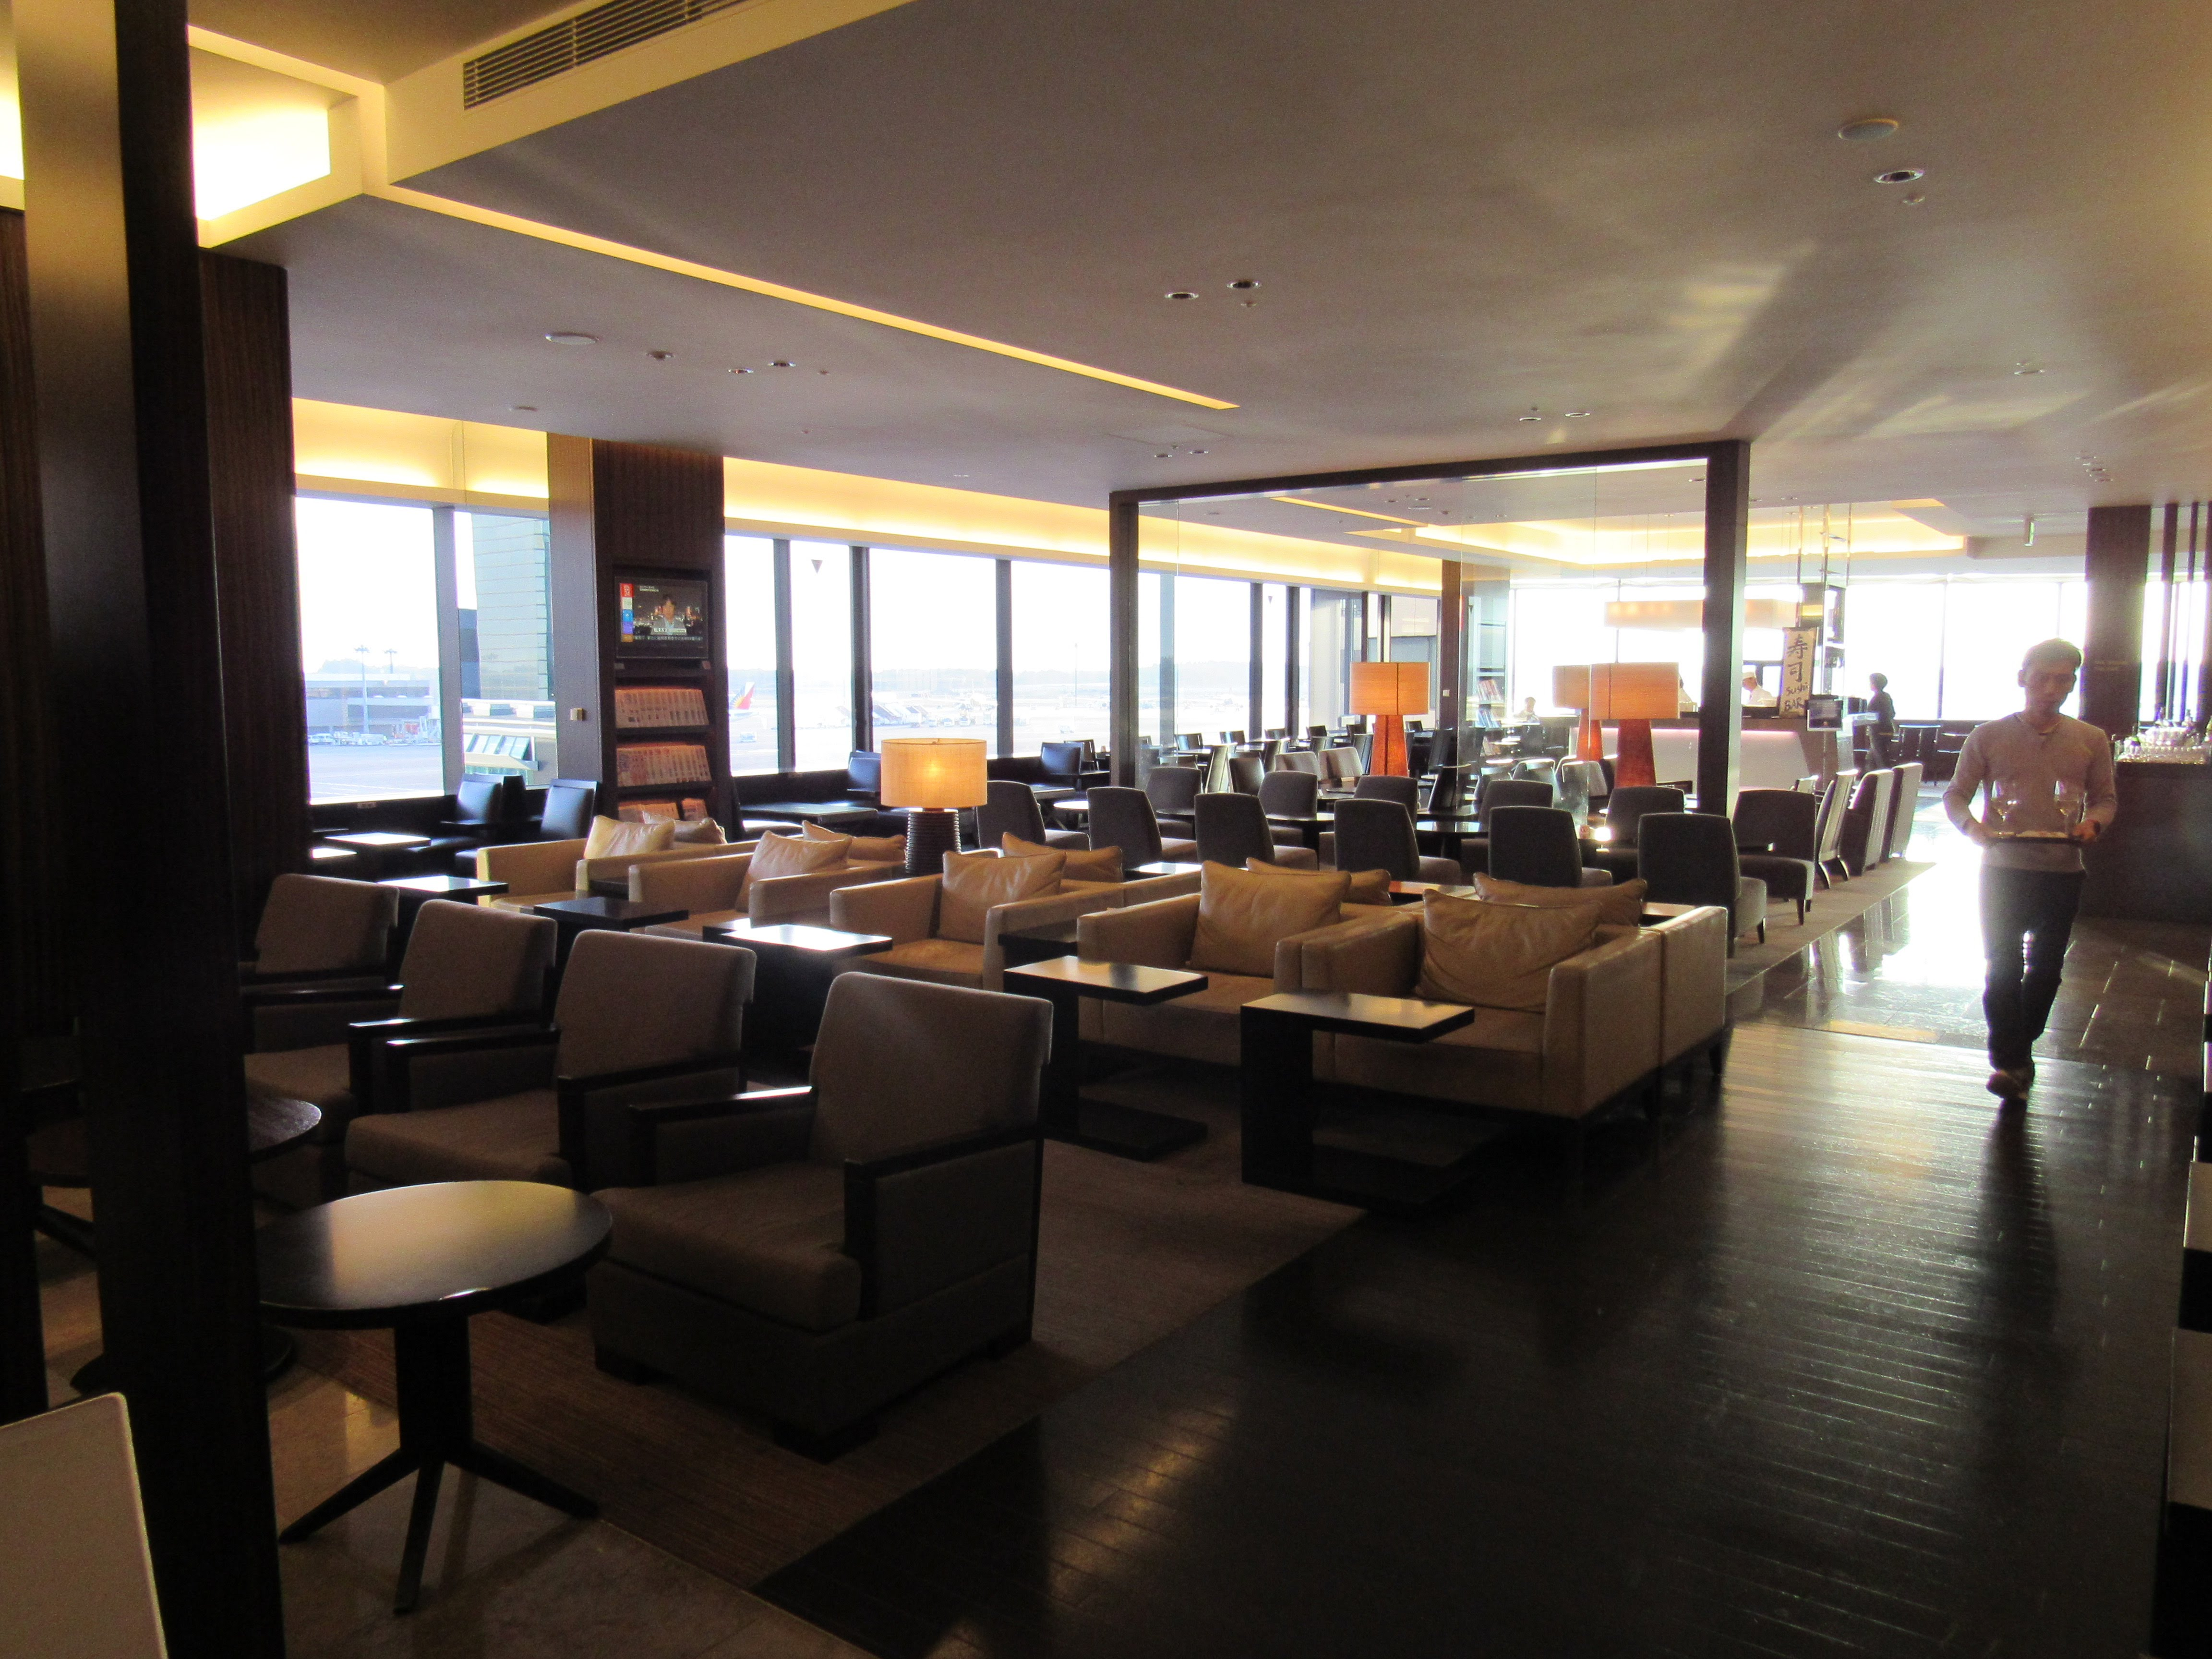 Lounge Areas